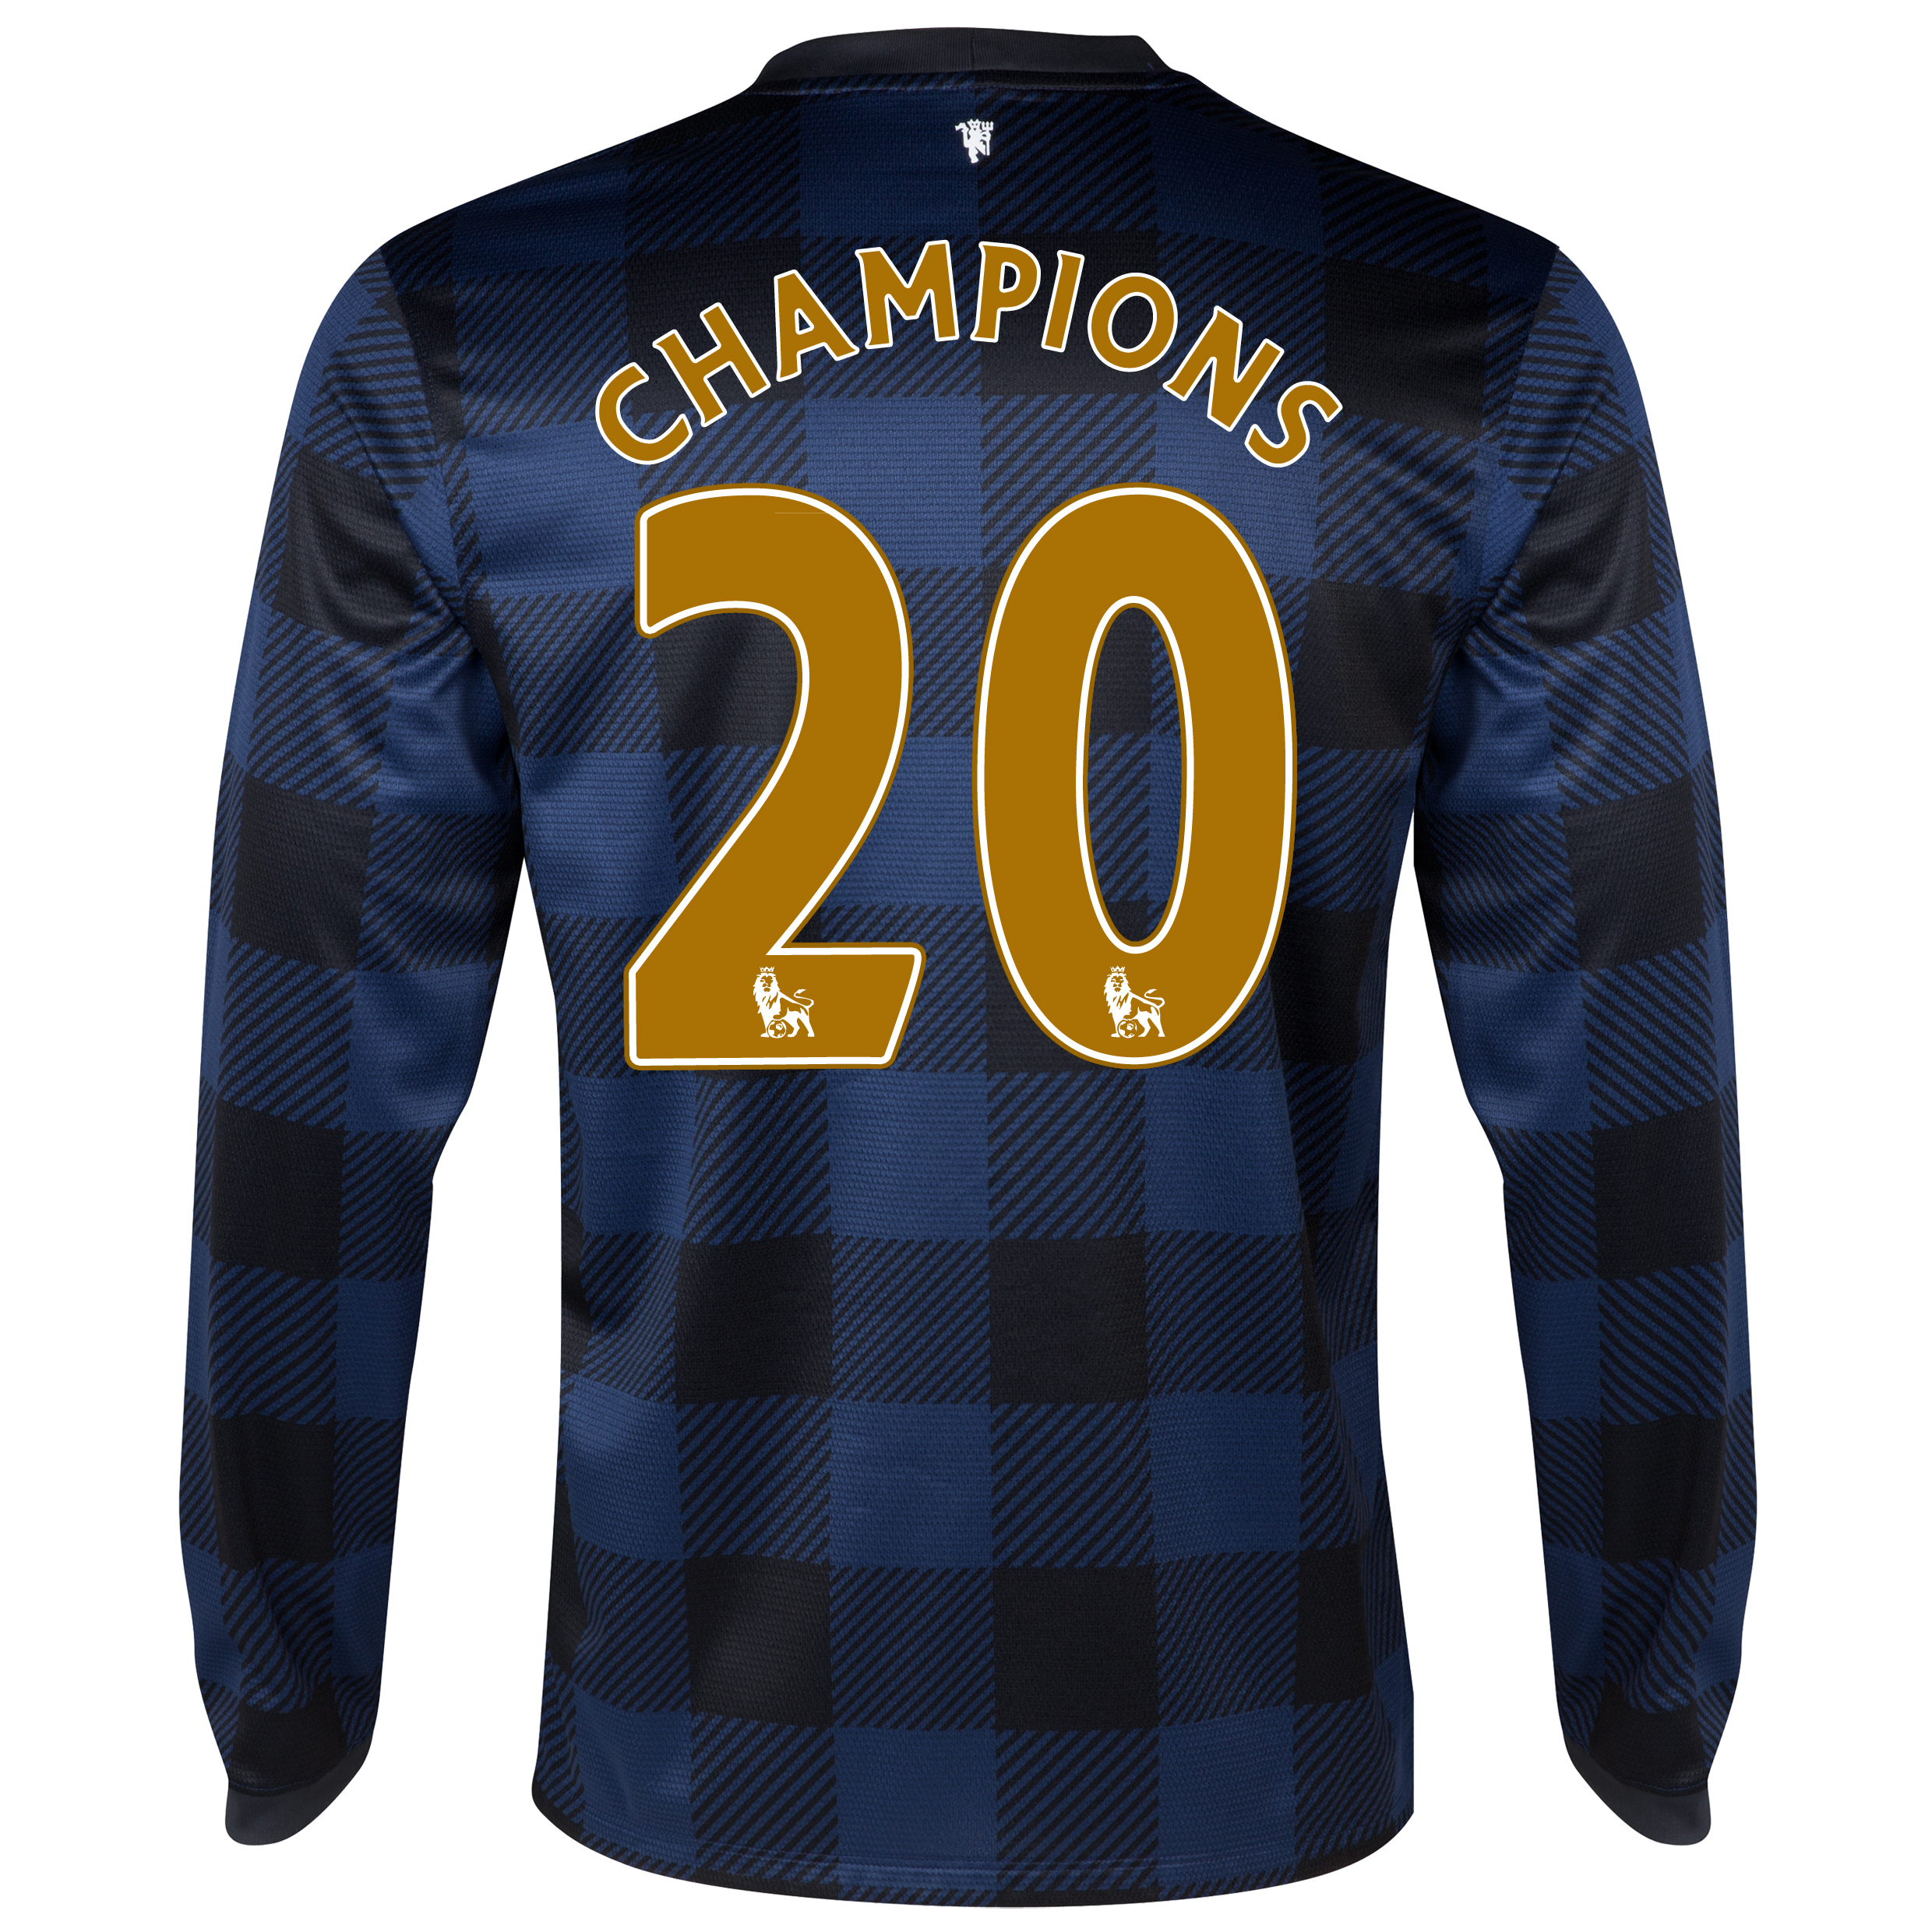 Manchester United Away Shirt 2013/14 - Long Sleeved - Kids with Champions 20 printing